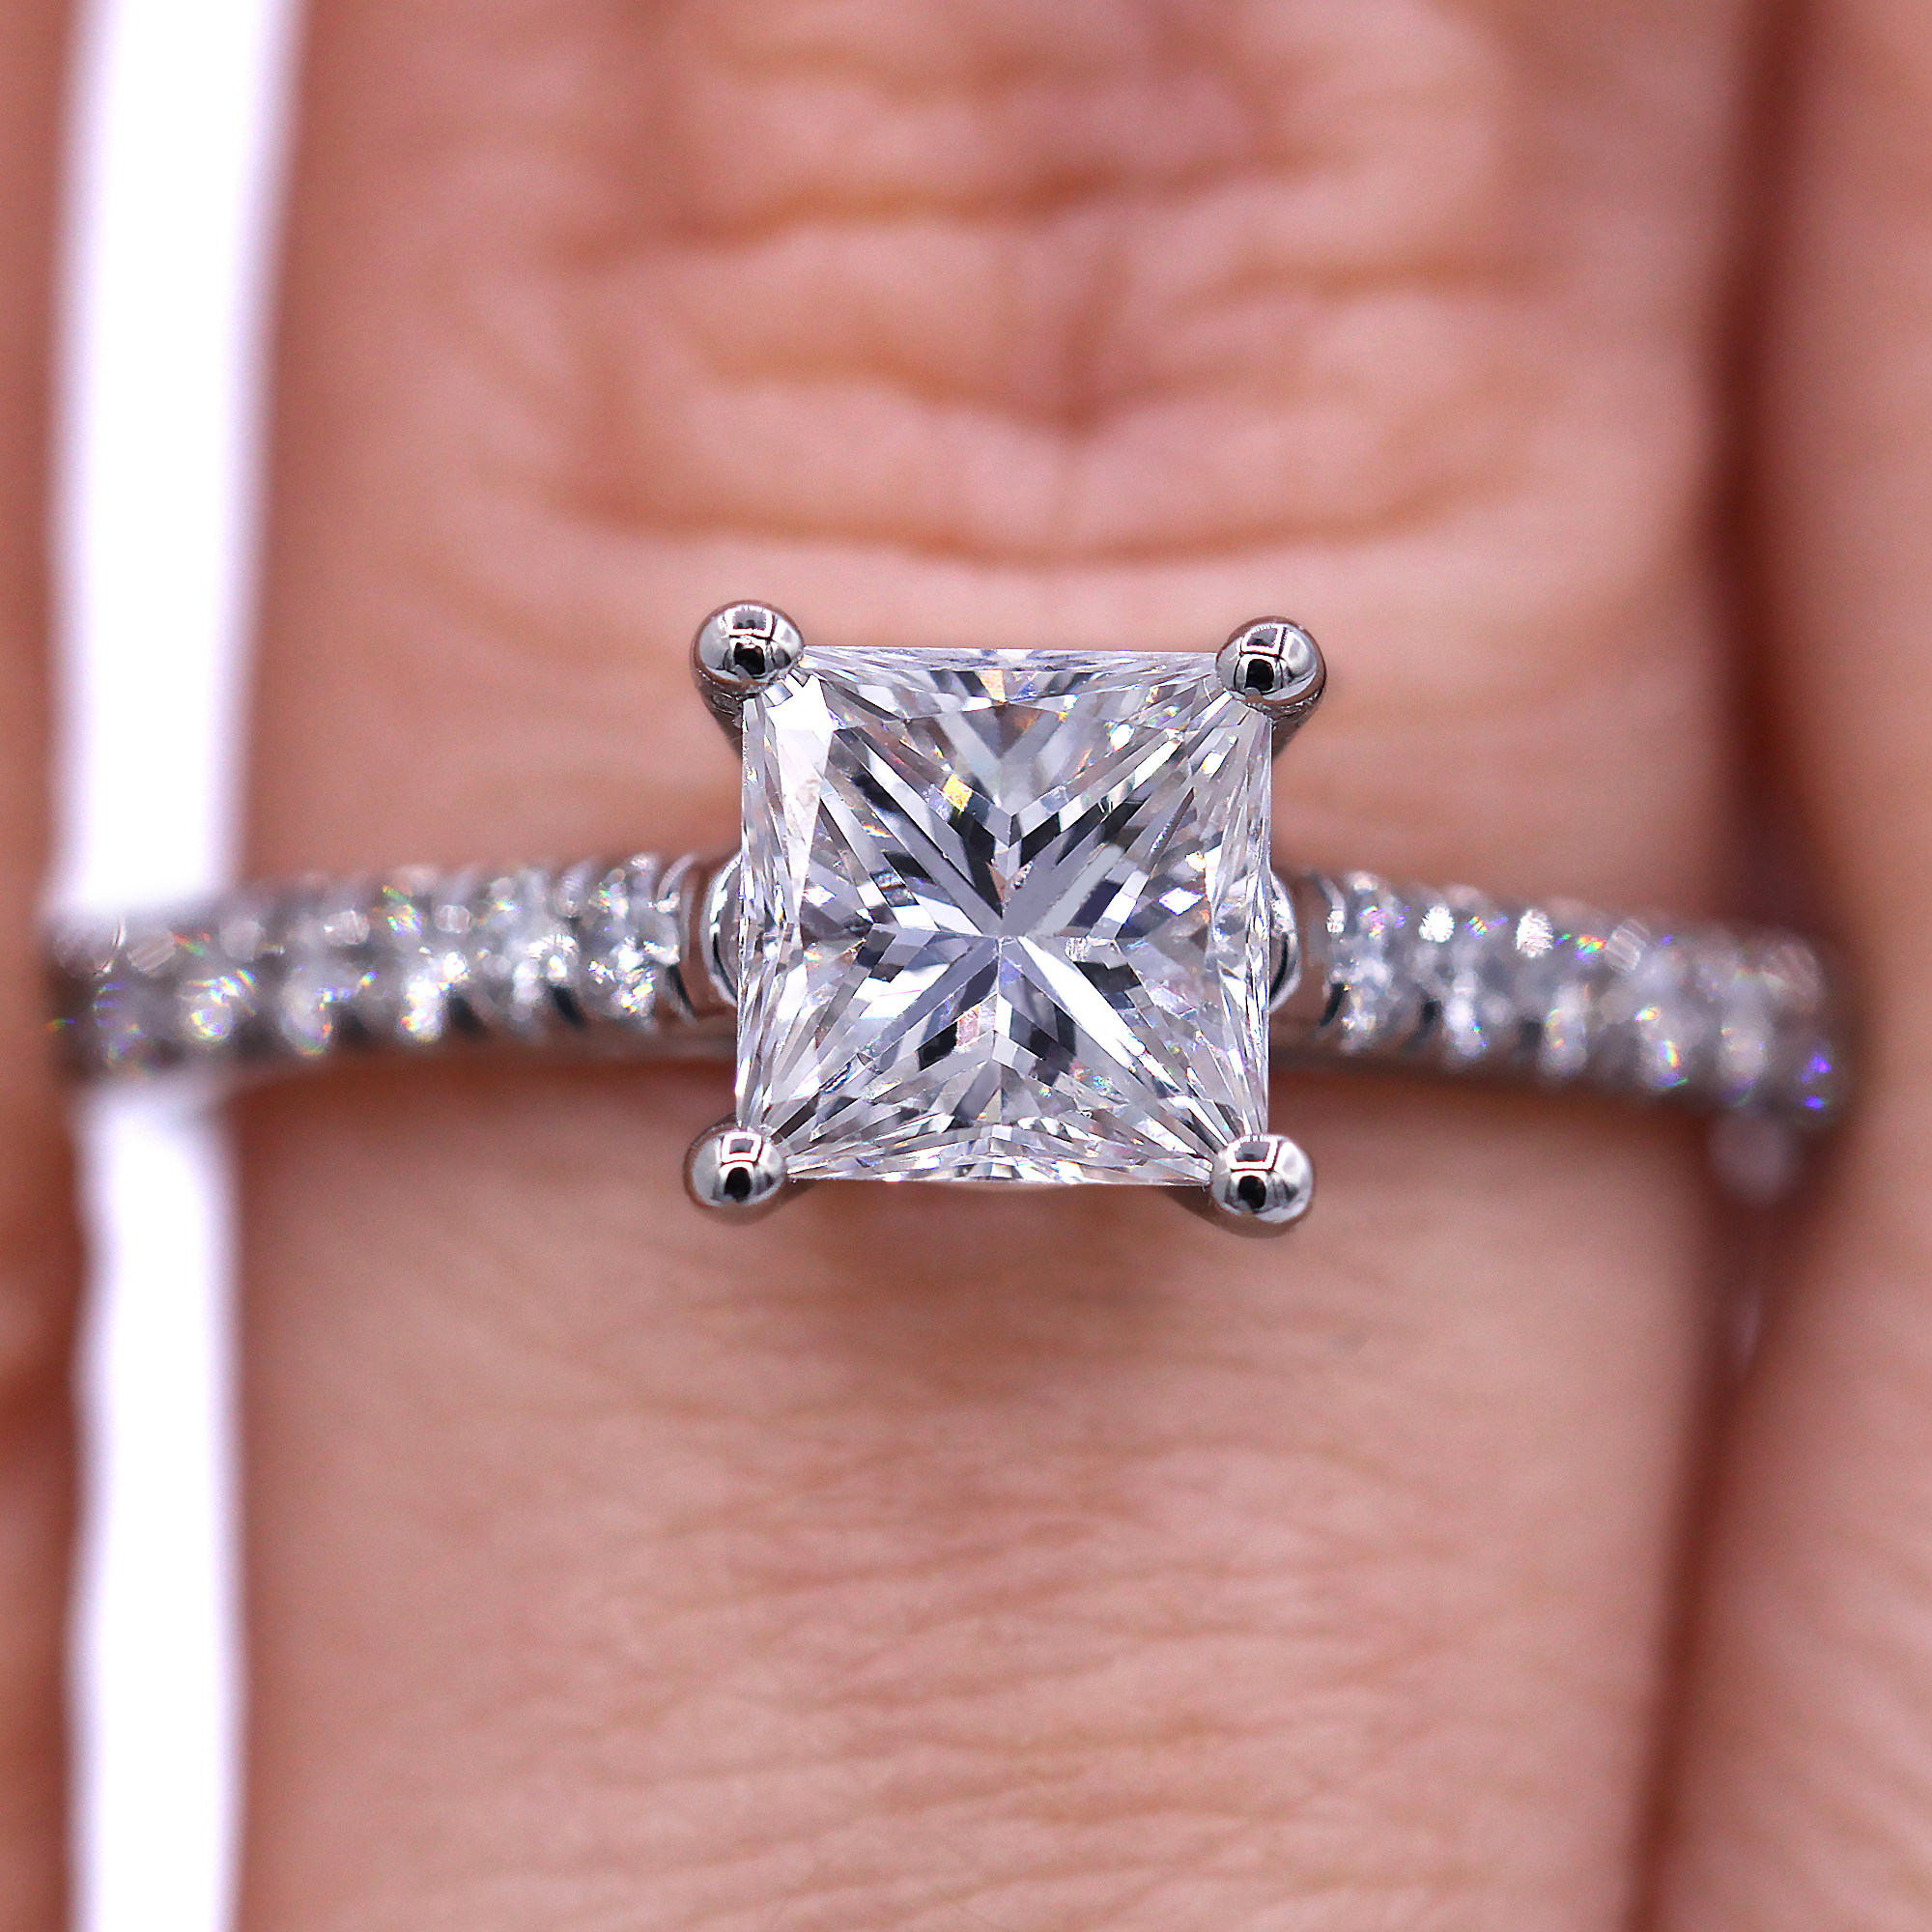 Platinum 1.18 carat princess cut diamond engagement ring - Luxury ...